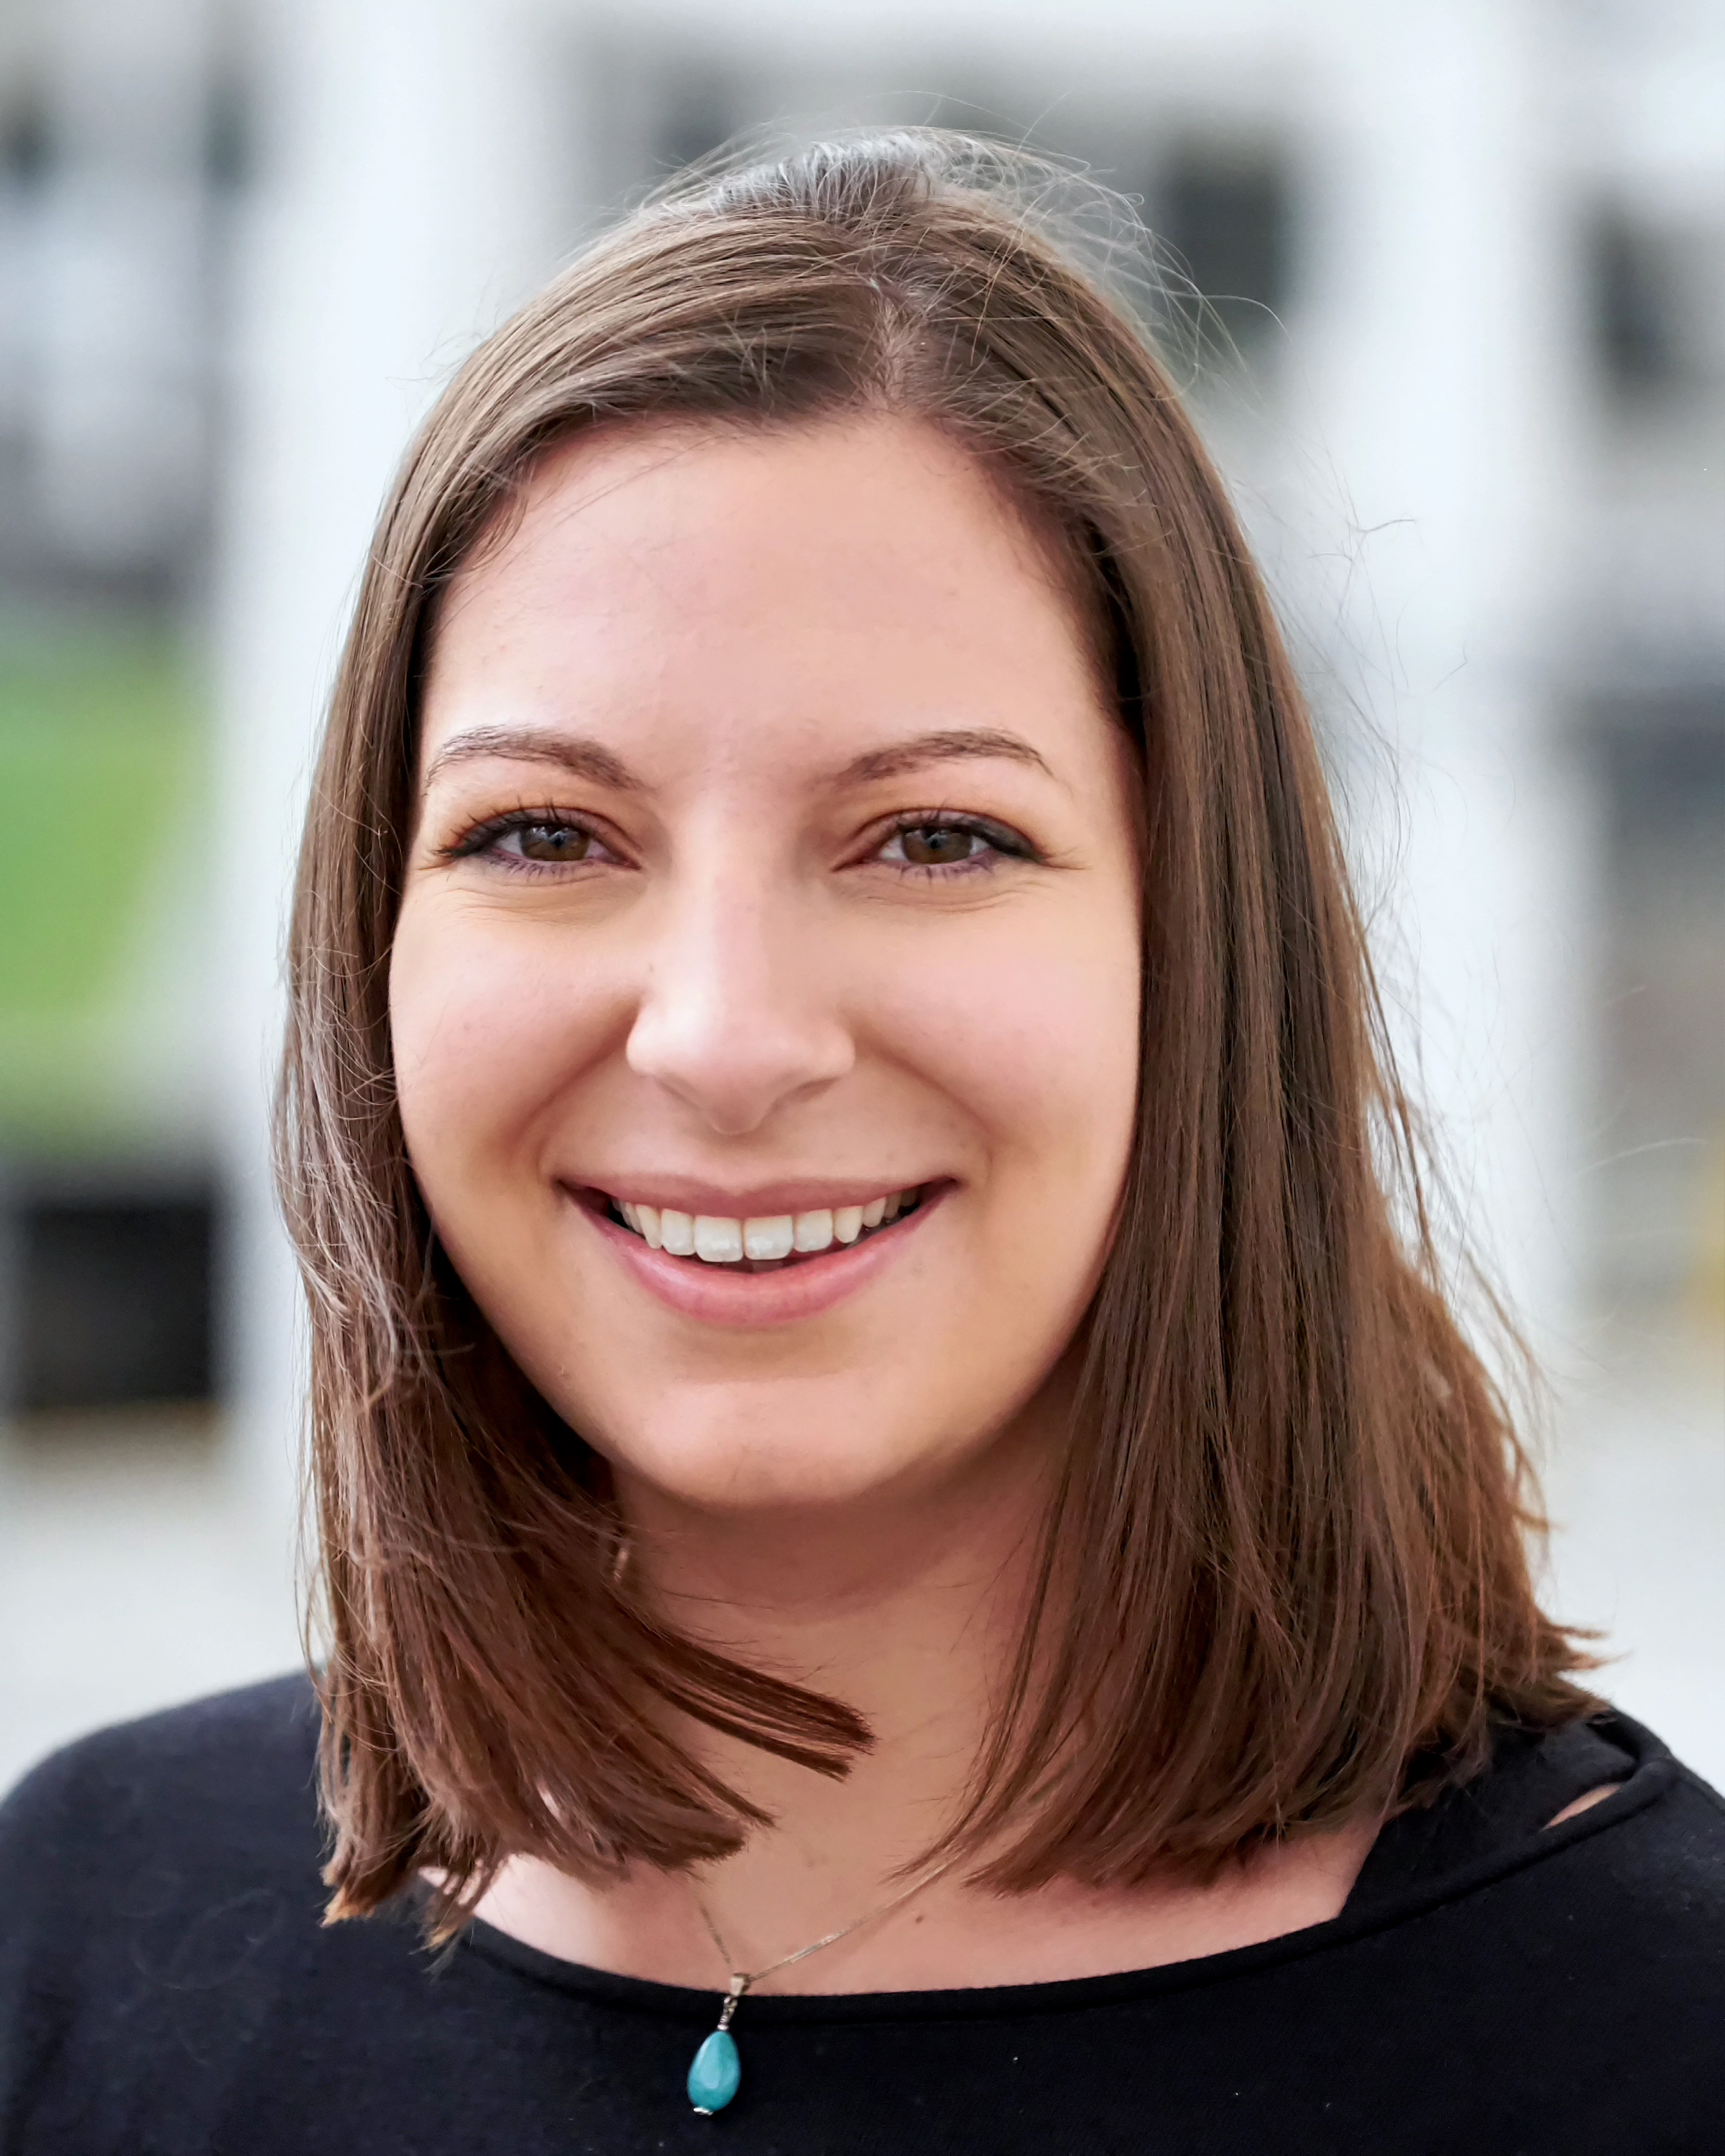 Q&A: DANIELLE BURBY, LITERARY AGENT AT NELSON LITERARY AGENCY